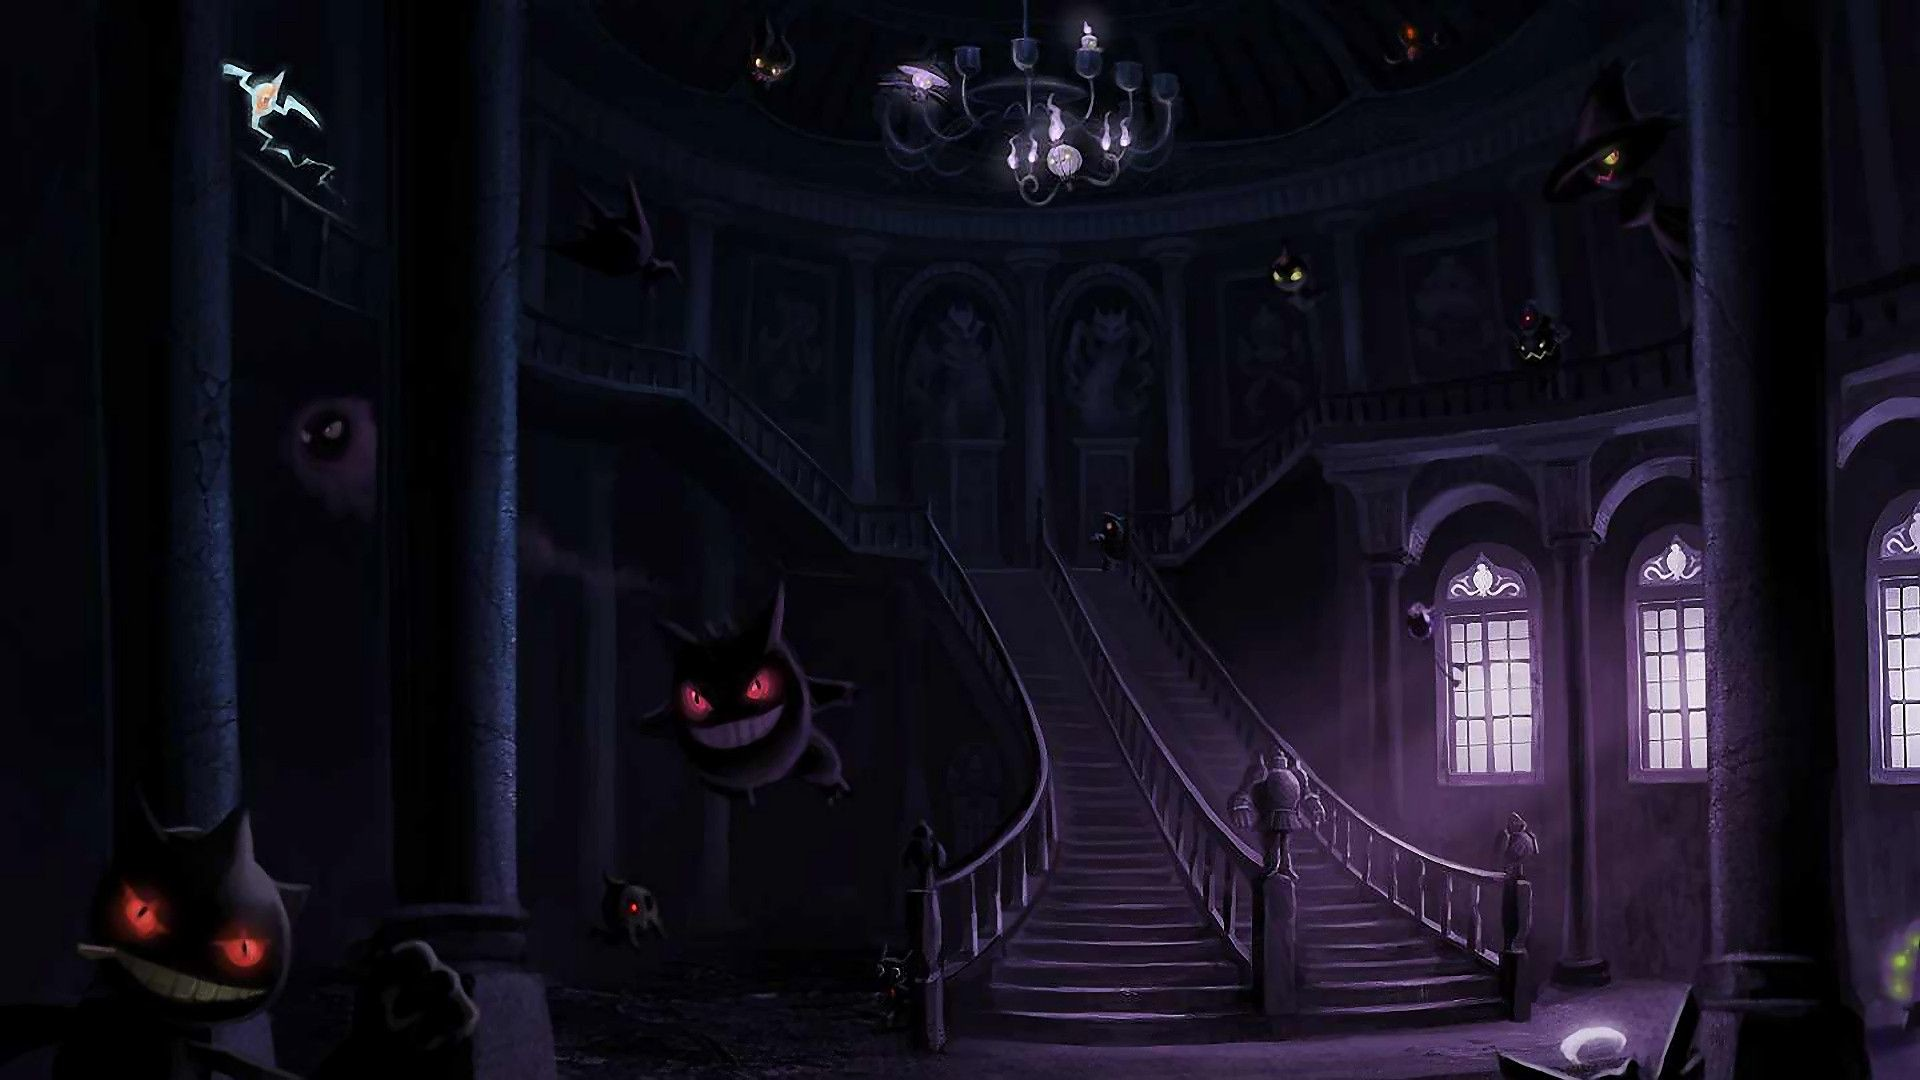 Lavender town pokemon ghastly gengar and other ghost type wallpaper